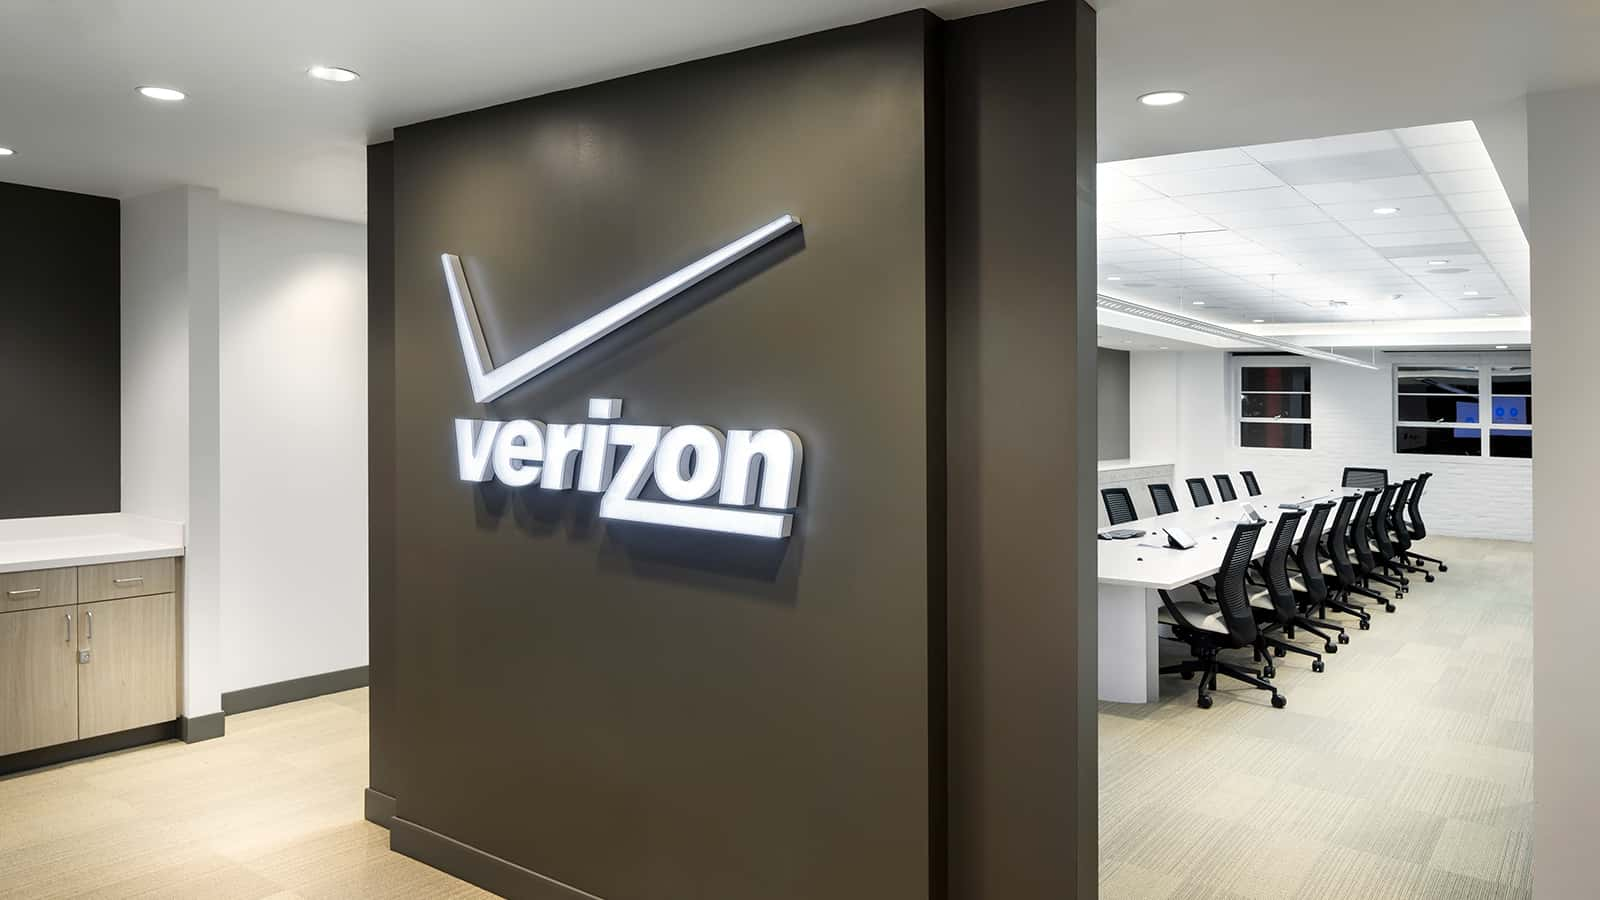 Verizon Led White logo on a gray pillar